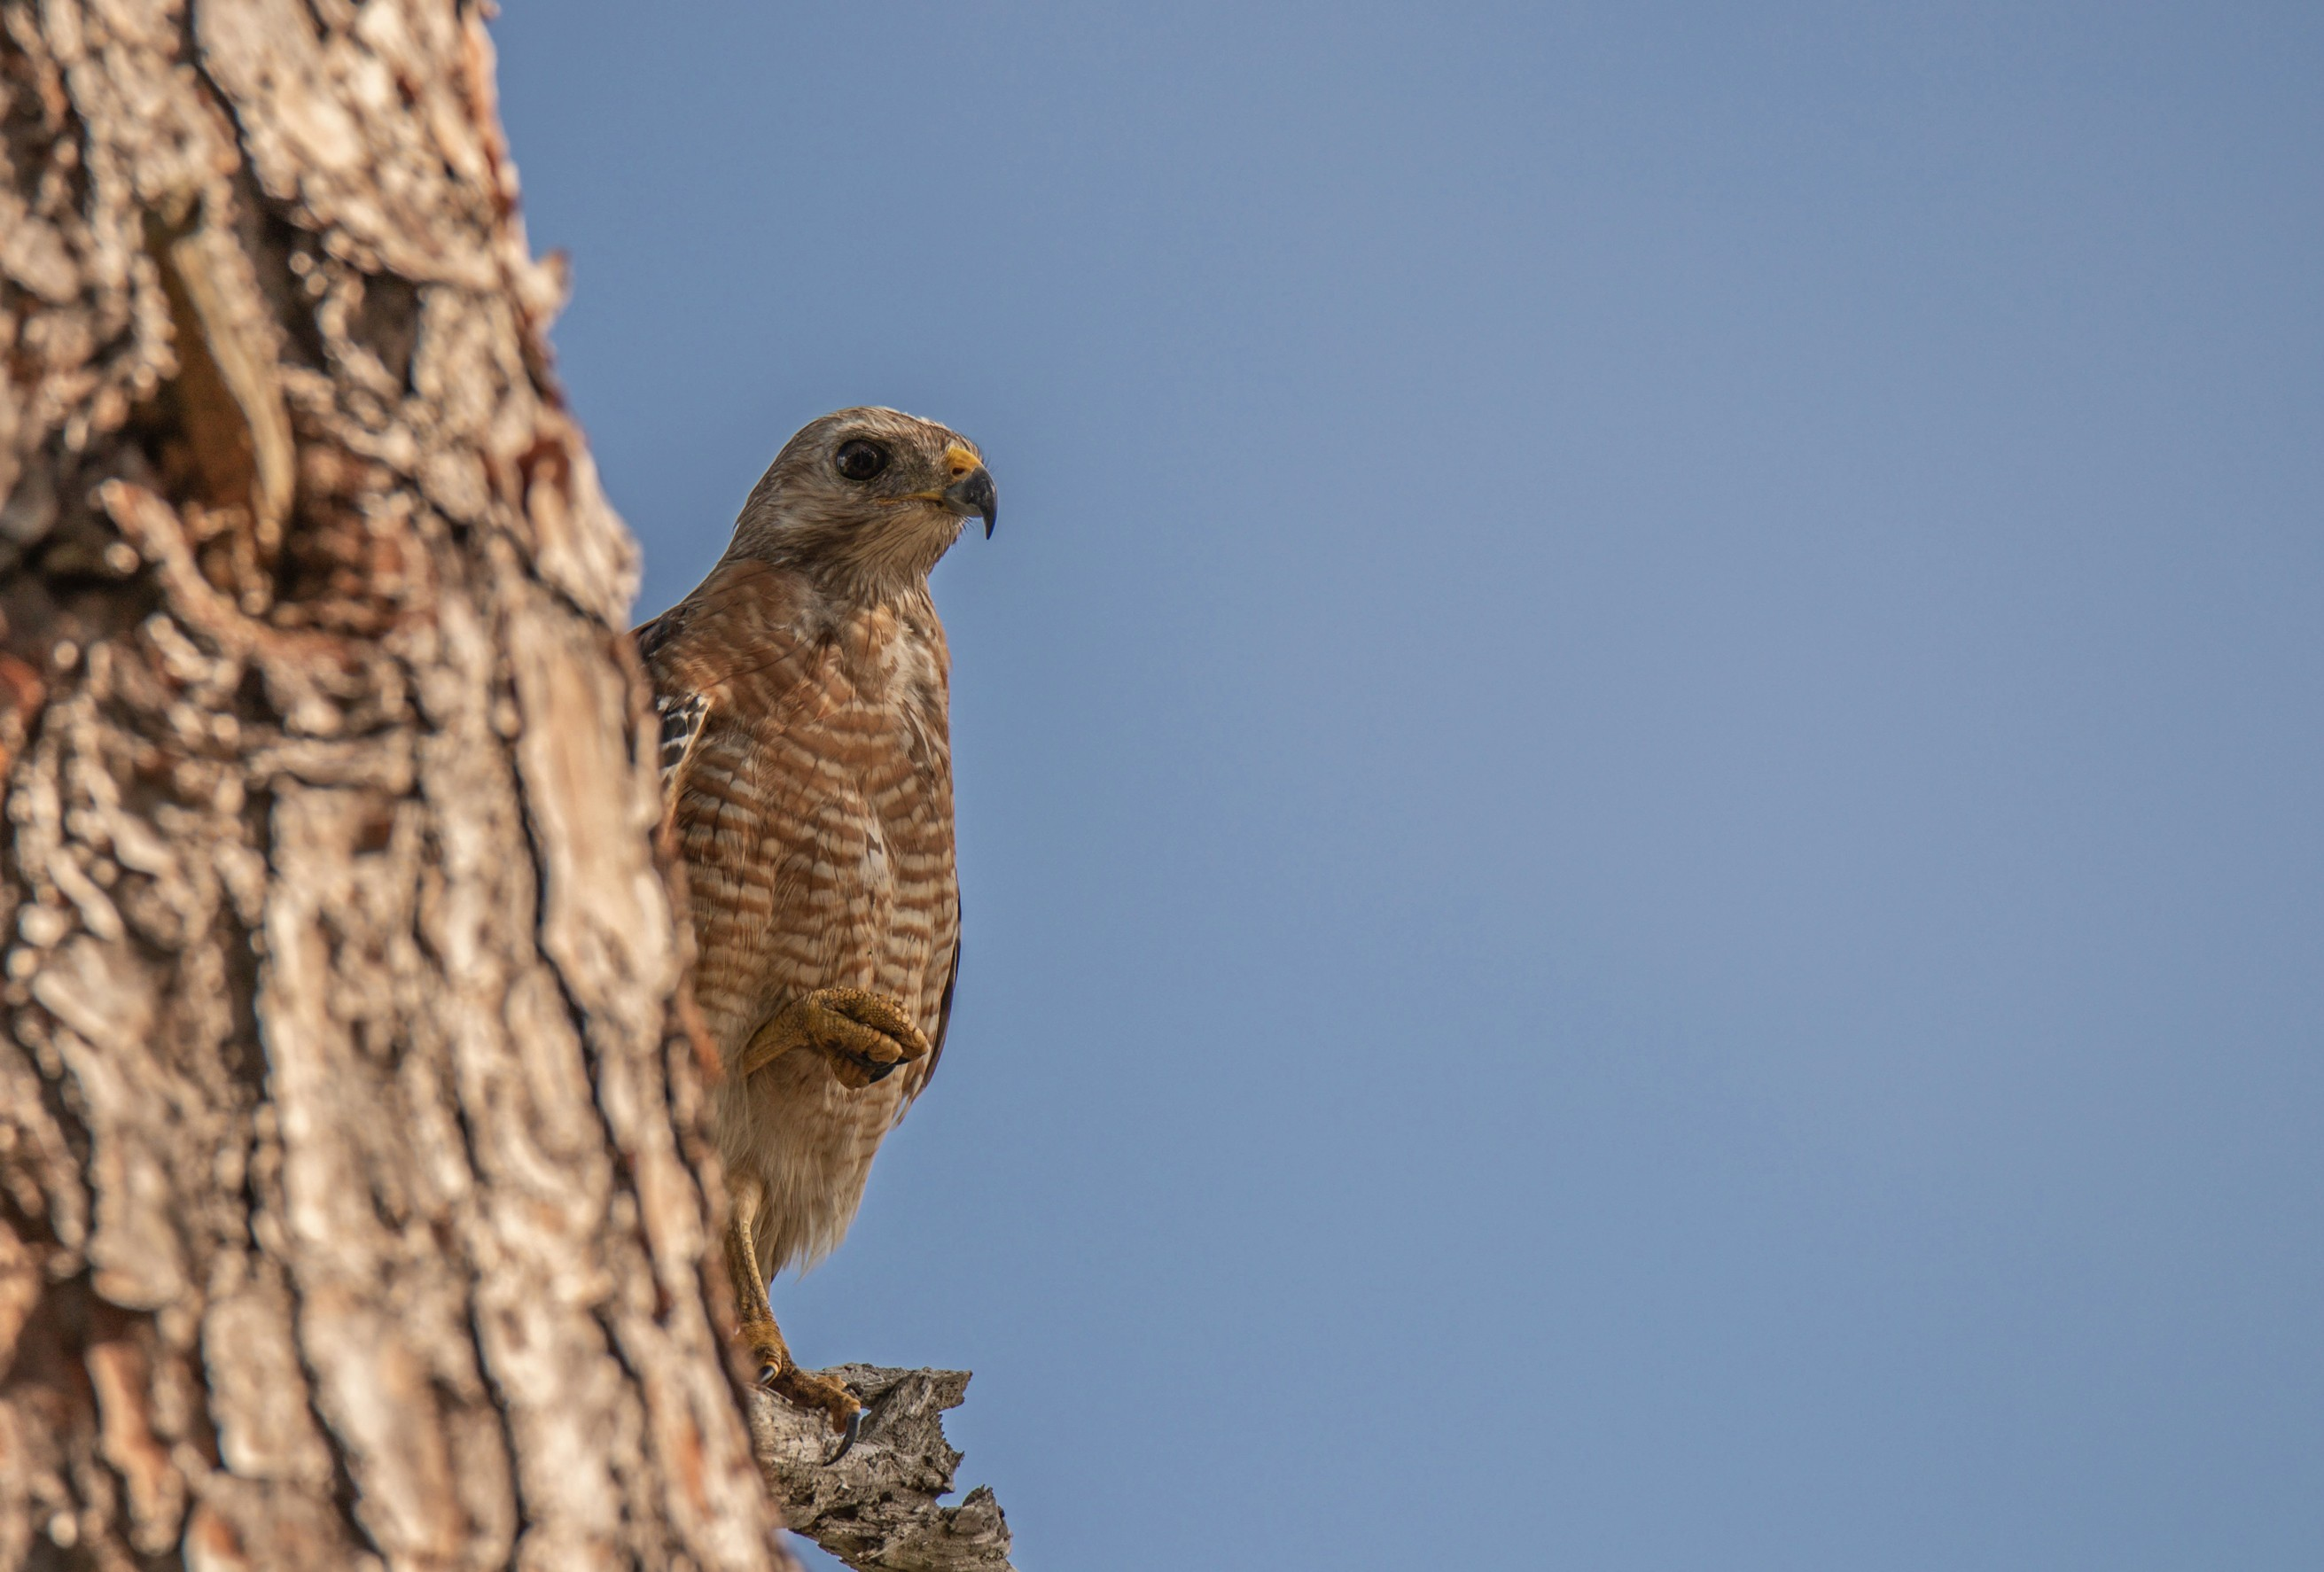 724-Red-Shouldered-Hawk-cvt-fn.jpg